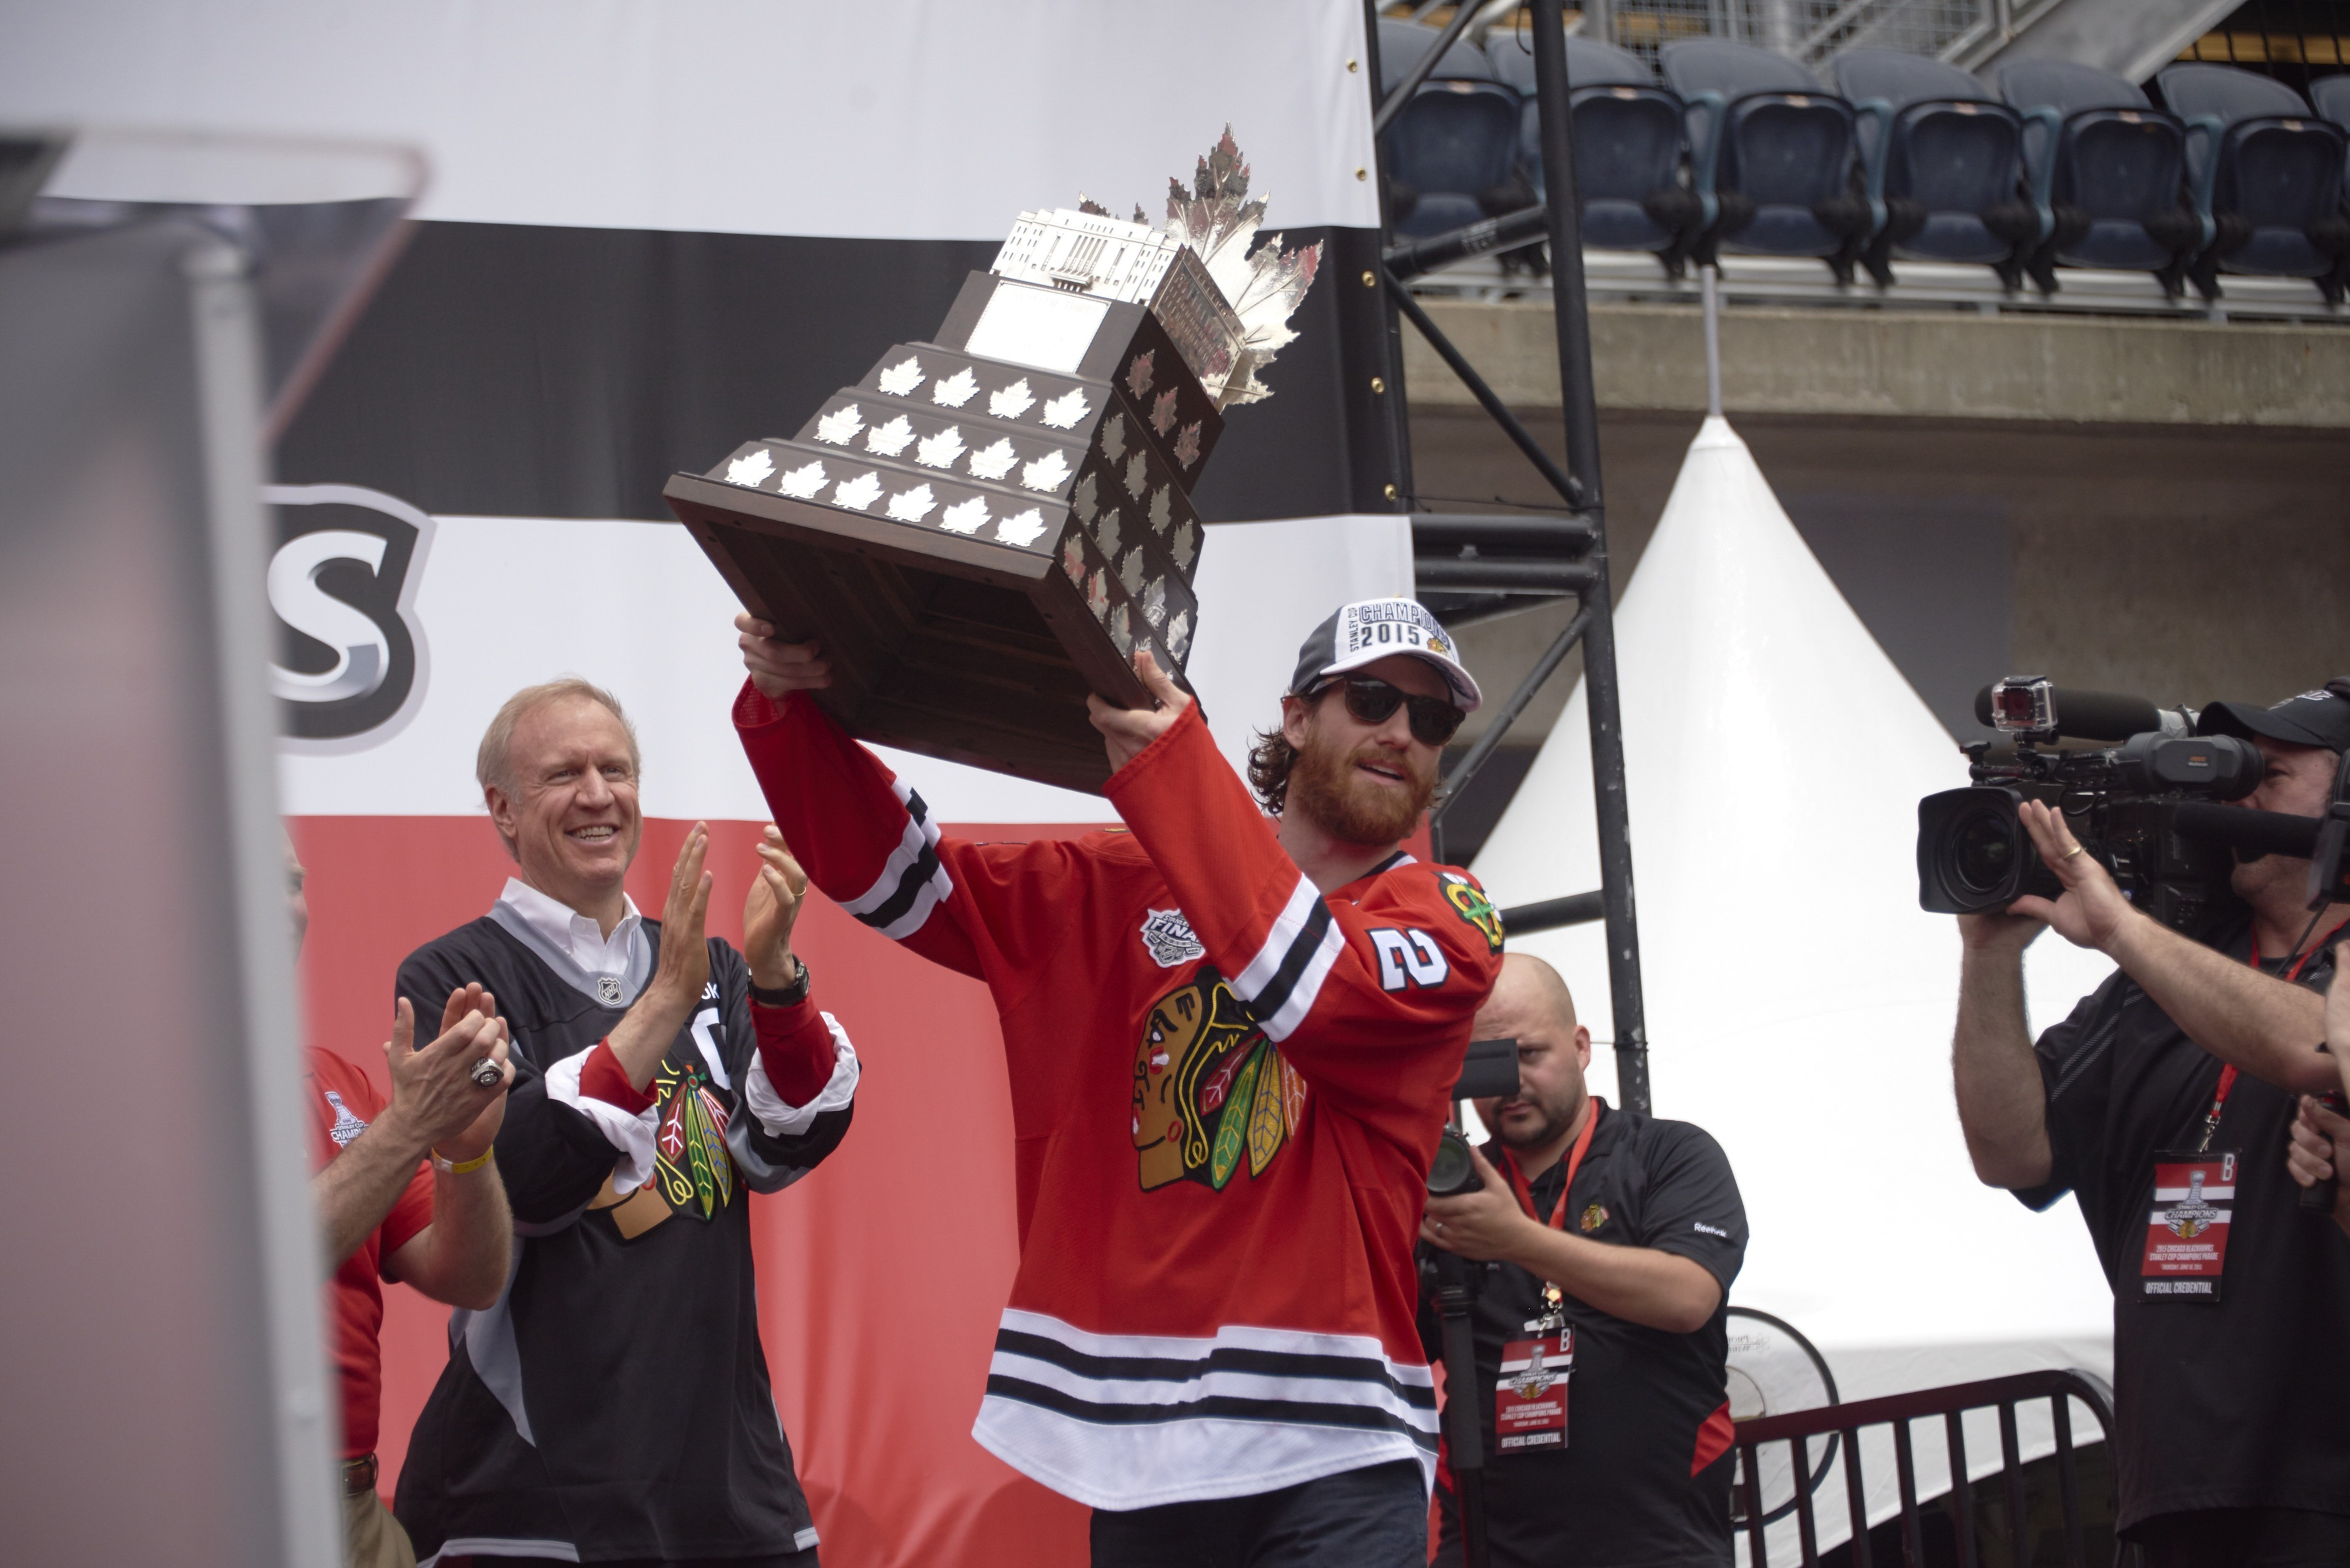 Chicago Blackhawks Victory Parade, 2015 NHL Stanley Cup Finals